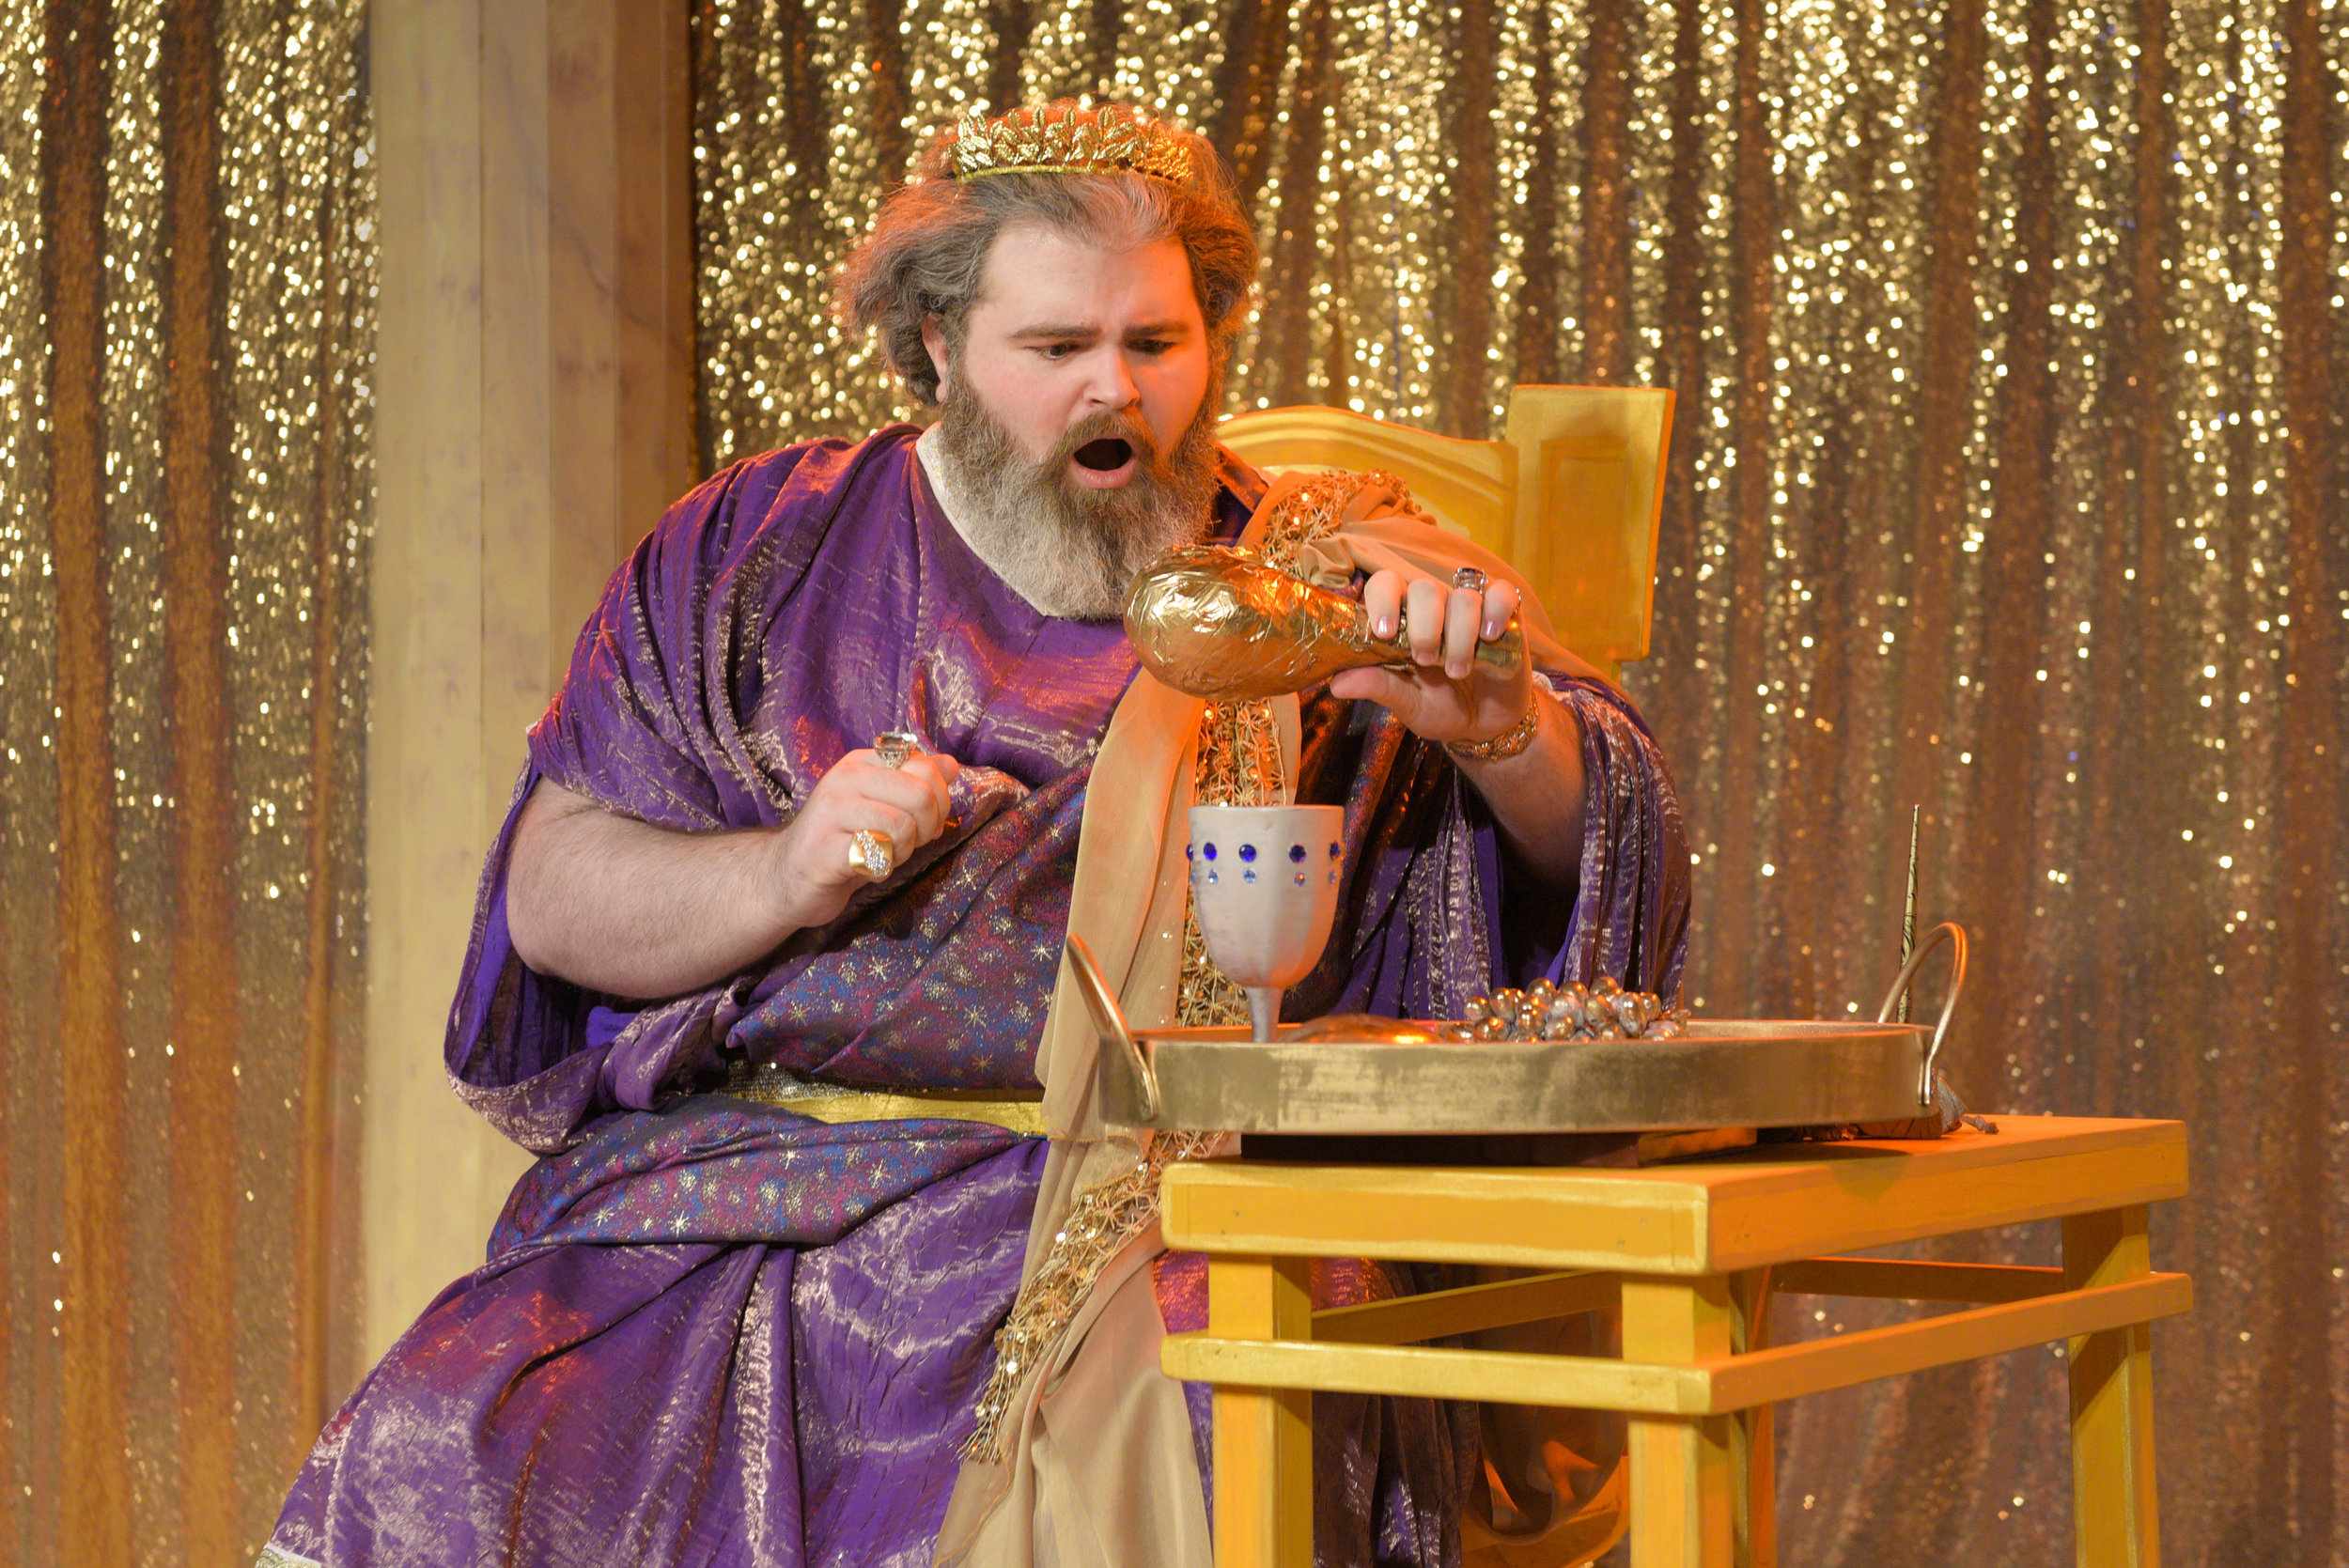 Matt Standley as King Midas